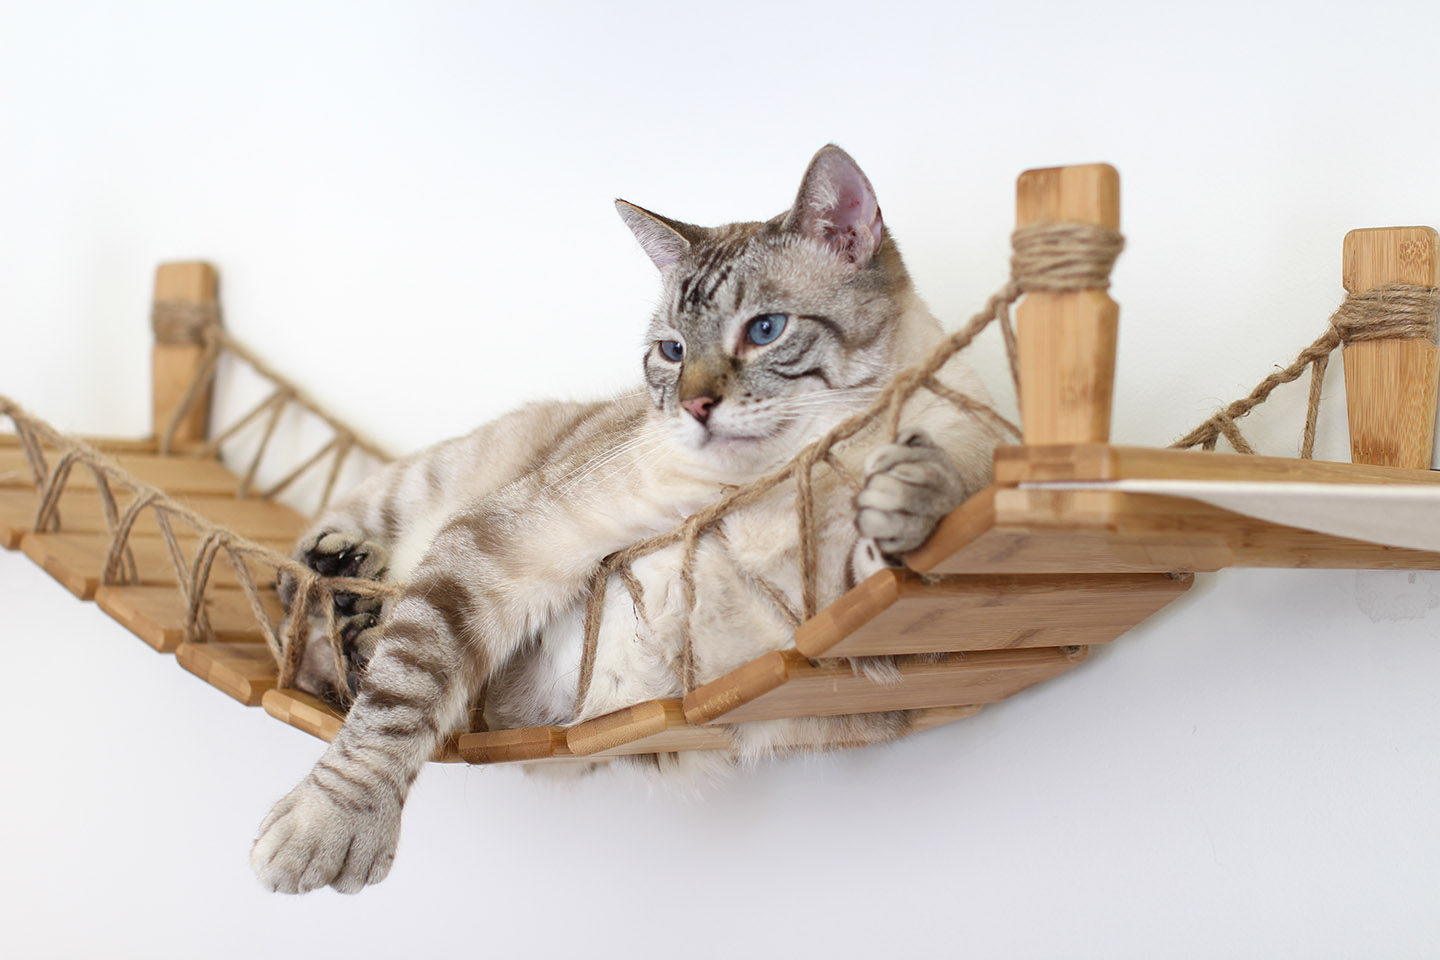 This photo displays our cat lounging on the Bridge that is a part of The Juggernaut complex. This Bridge is in Natural, a light brown stain.